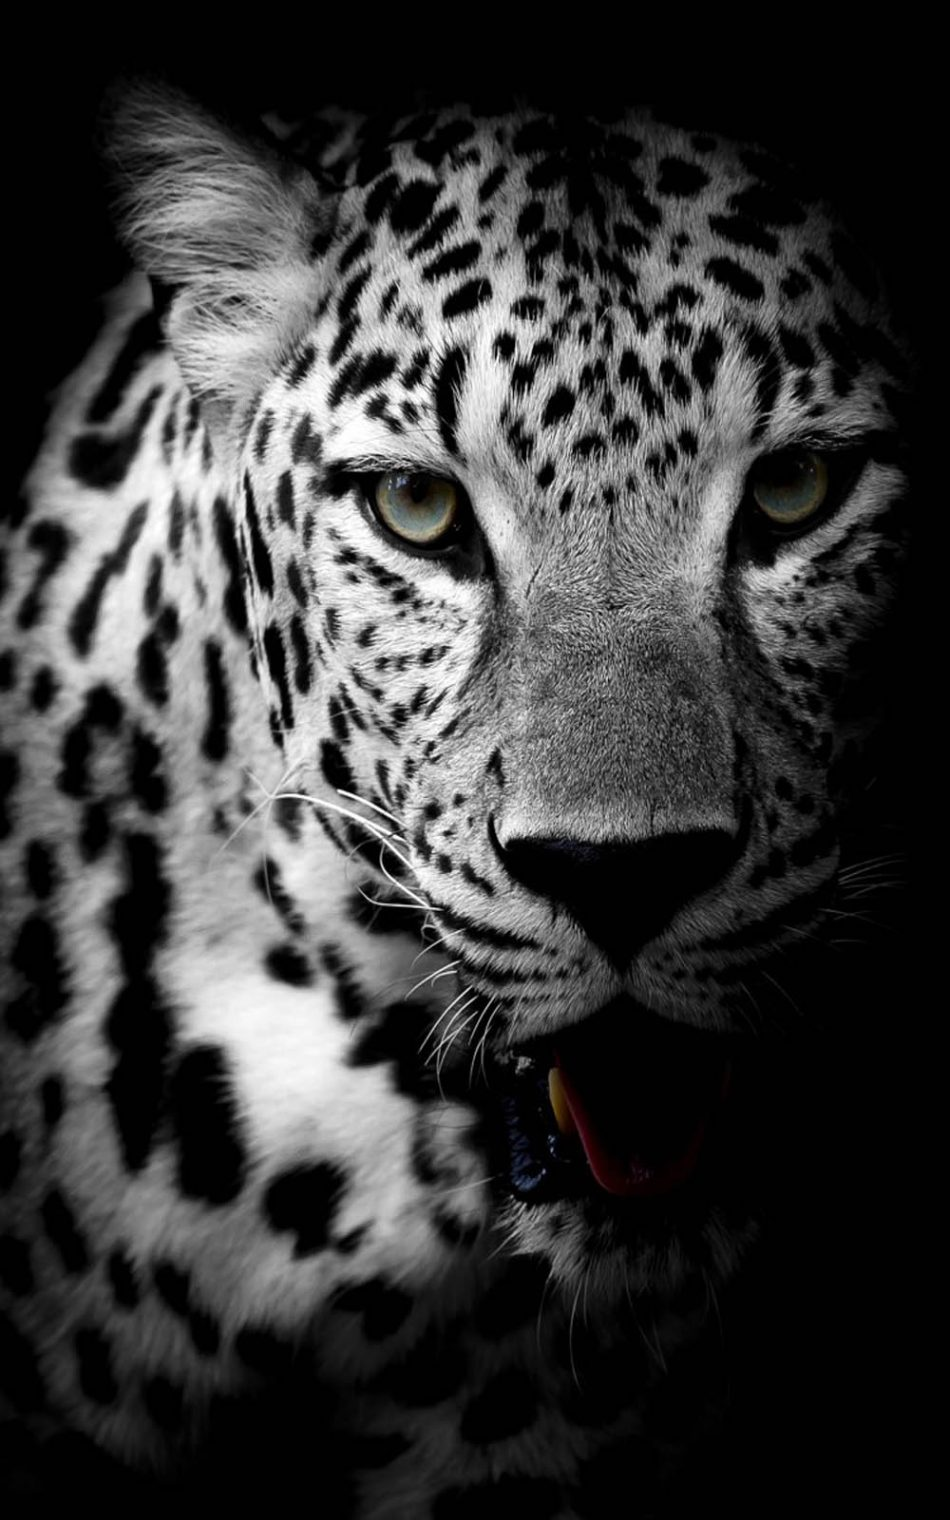 Free Download Download Leopard Black White Pure 4k Ultra Hd Mobile Wallpaper 950x1520 For Your Desktop Mobile Tablet Explore 14 Black Jaguar Hd Mobile Wallpaper Black Jaguar Hd Mobile